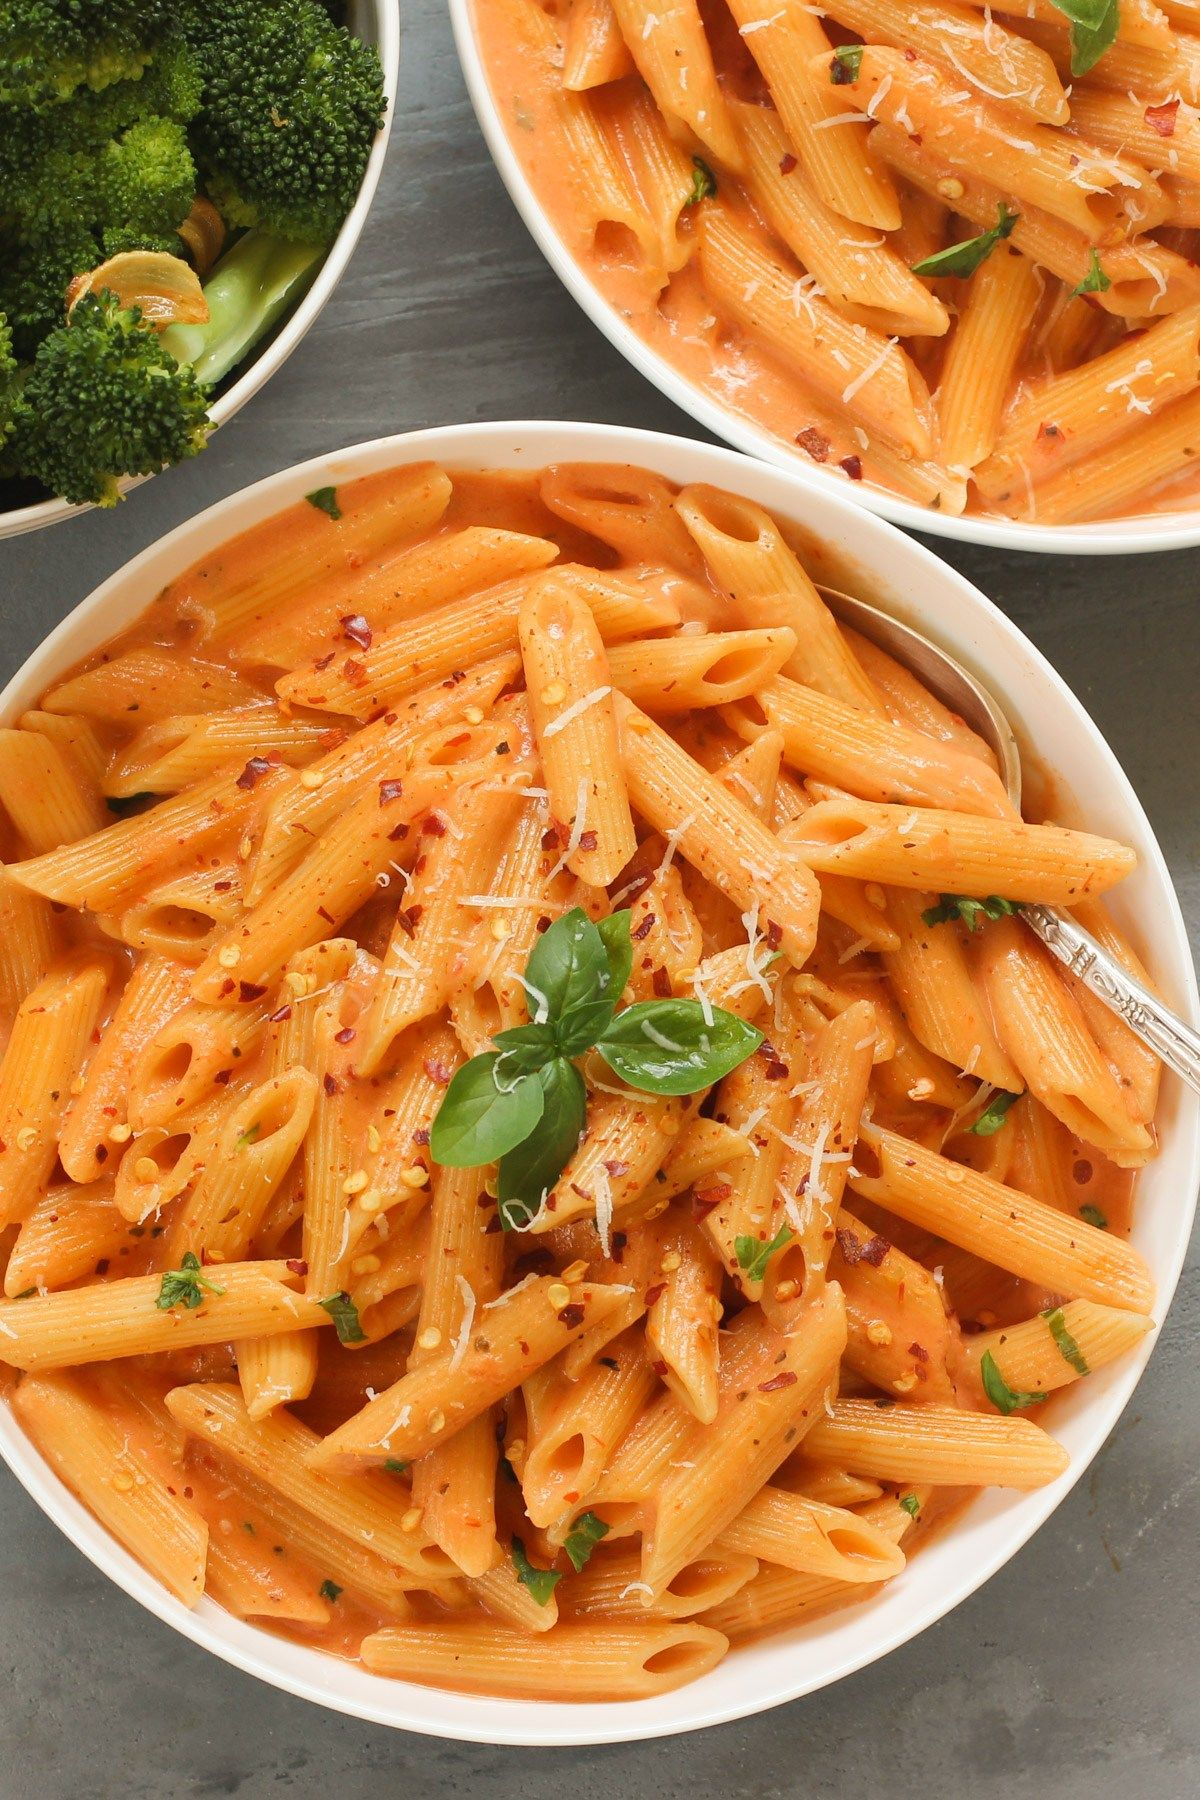 Pasta with Tomato Cream Sauce using InstaPot - Ministry of Curry